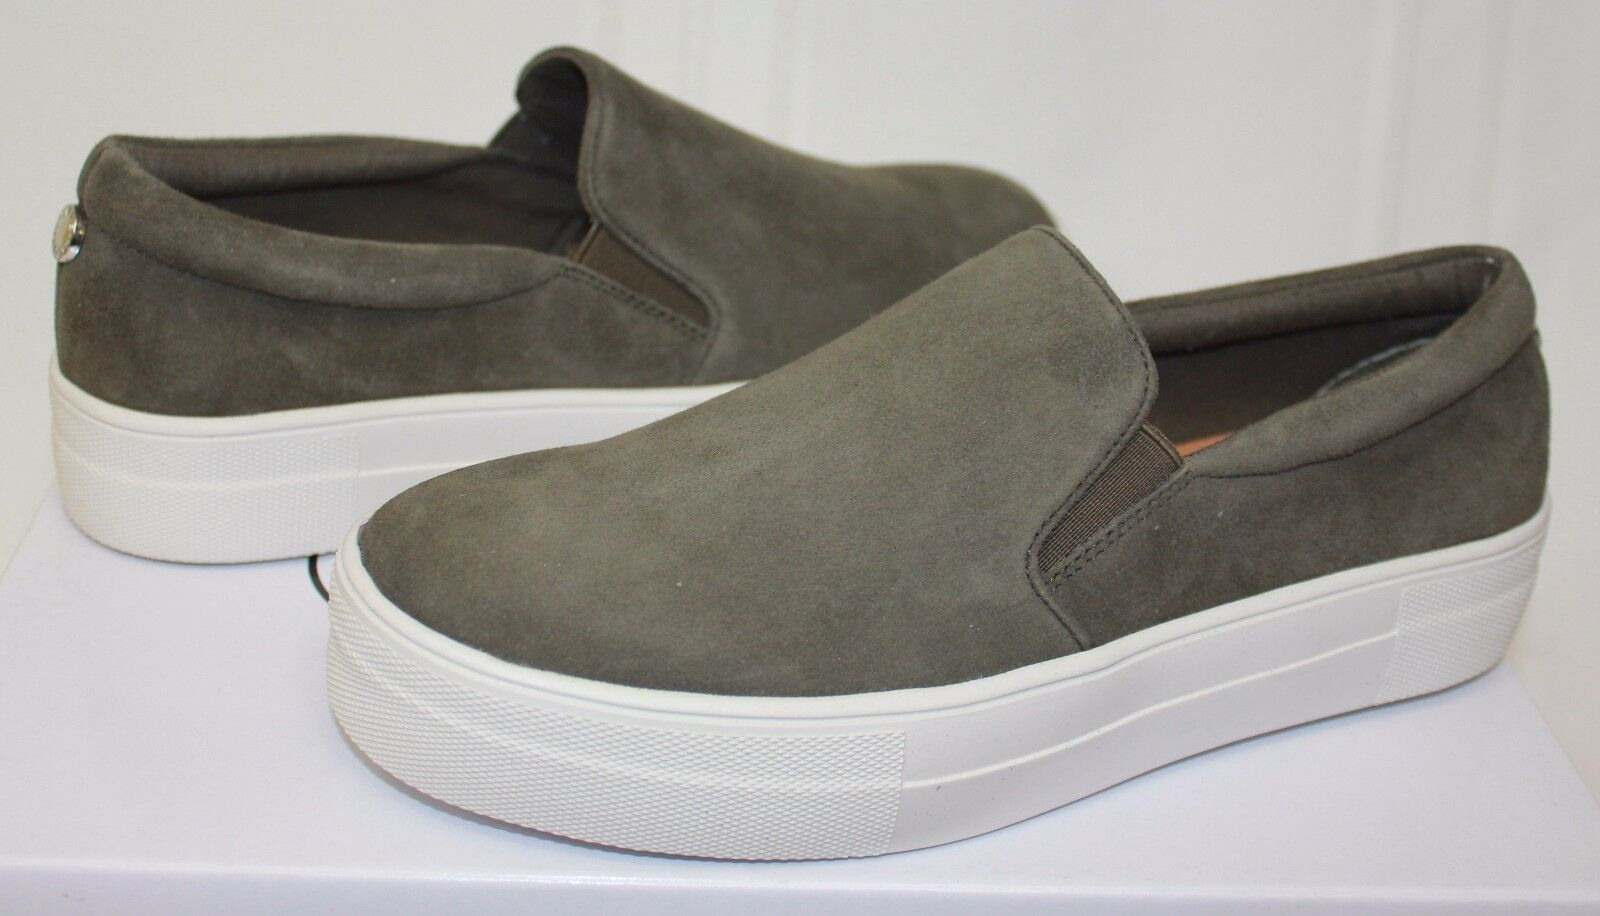 Steve Madden Gills Slip On Sneaker style shoes Olive Suede New With Box